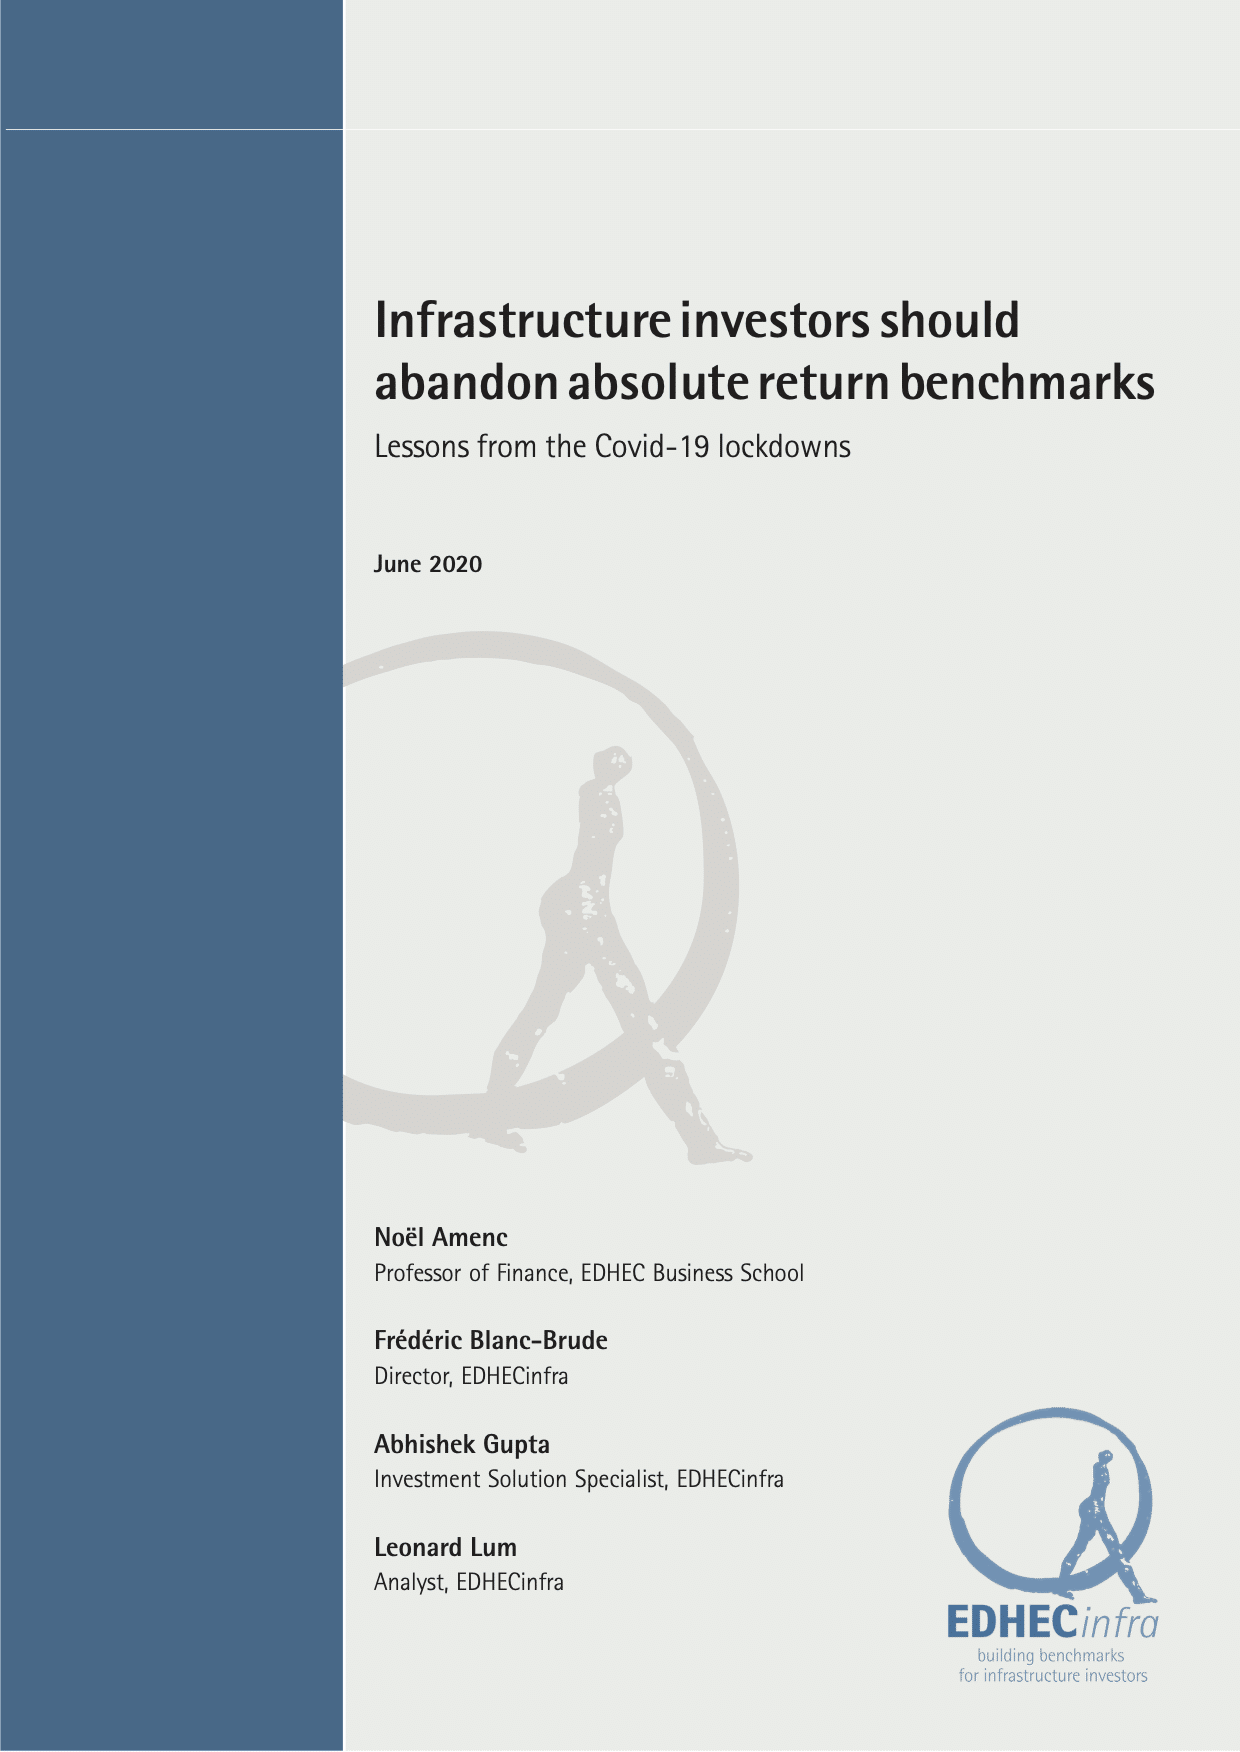 Infrastructure investors should abandon absolute return benchmarks – Lessons from the Covid-19 lockdowns